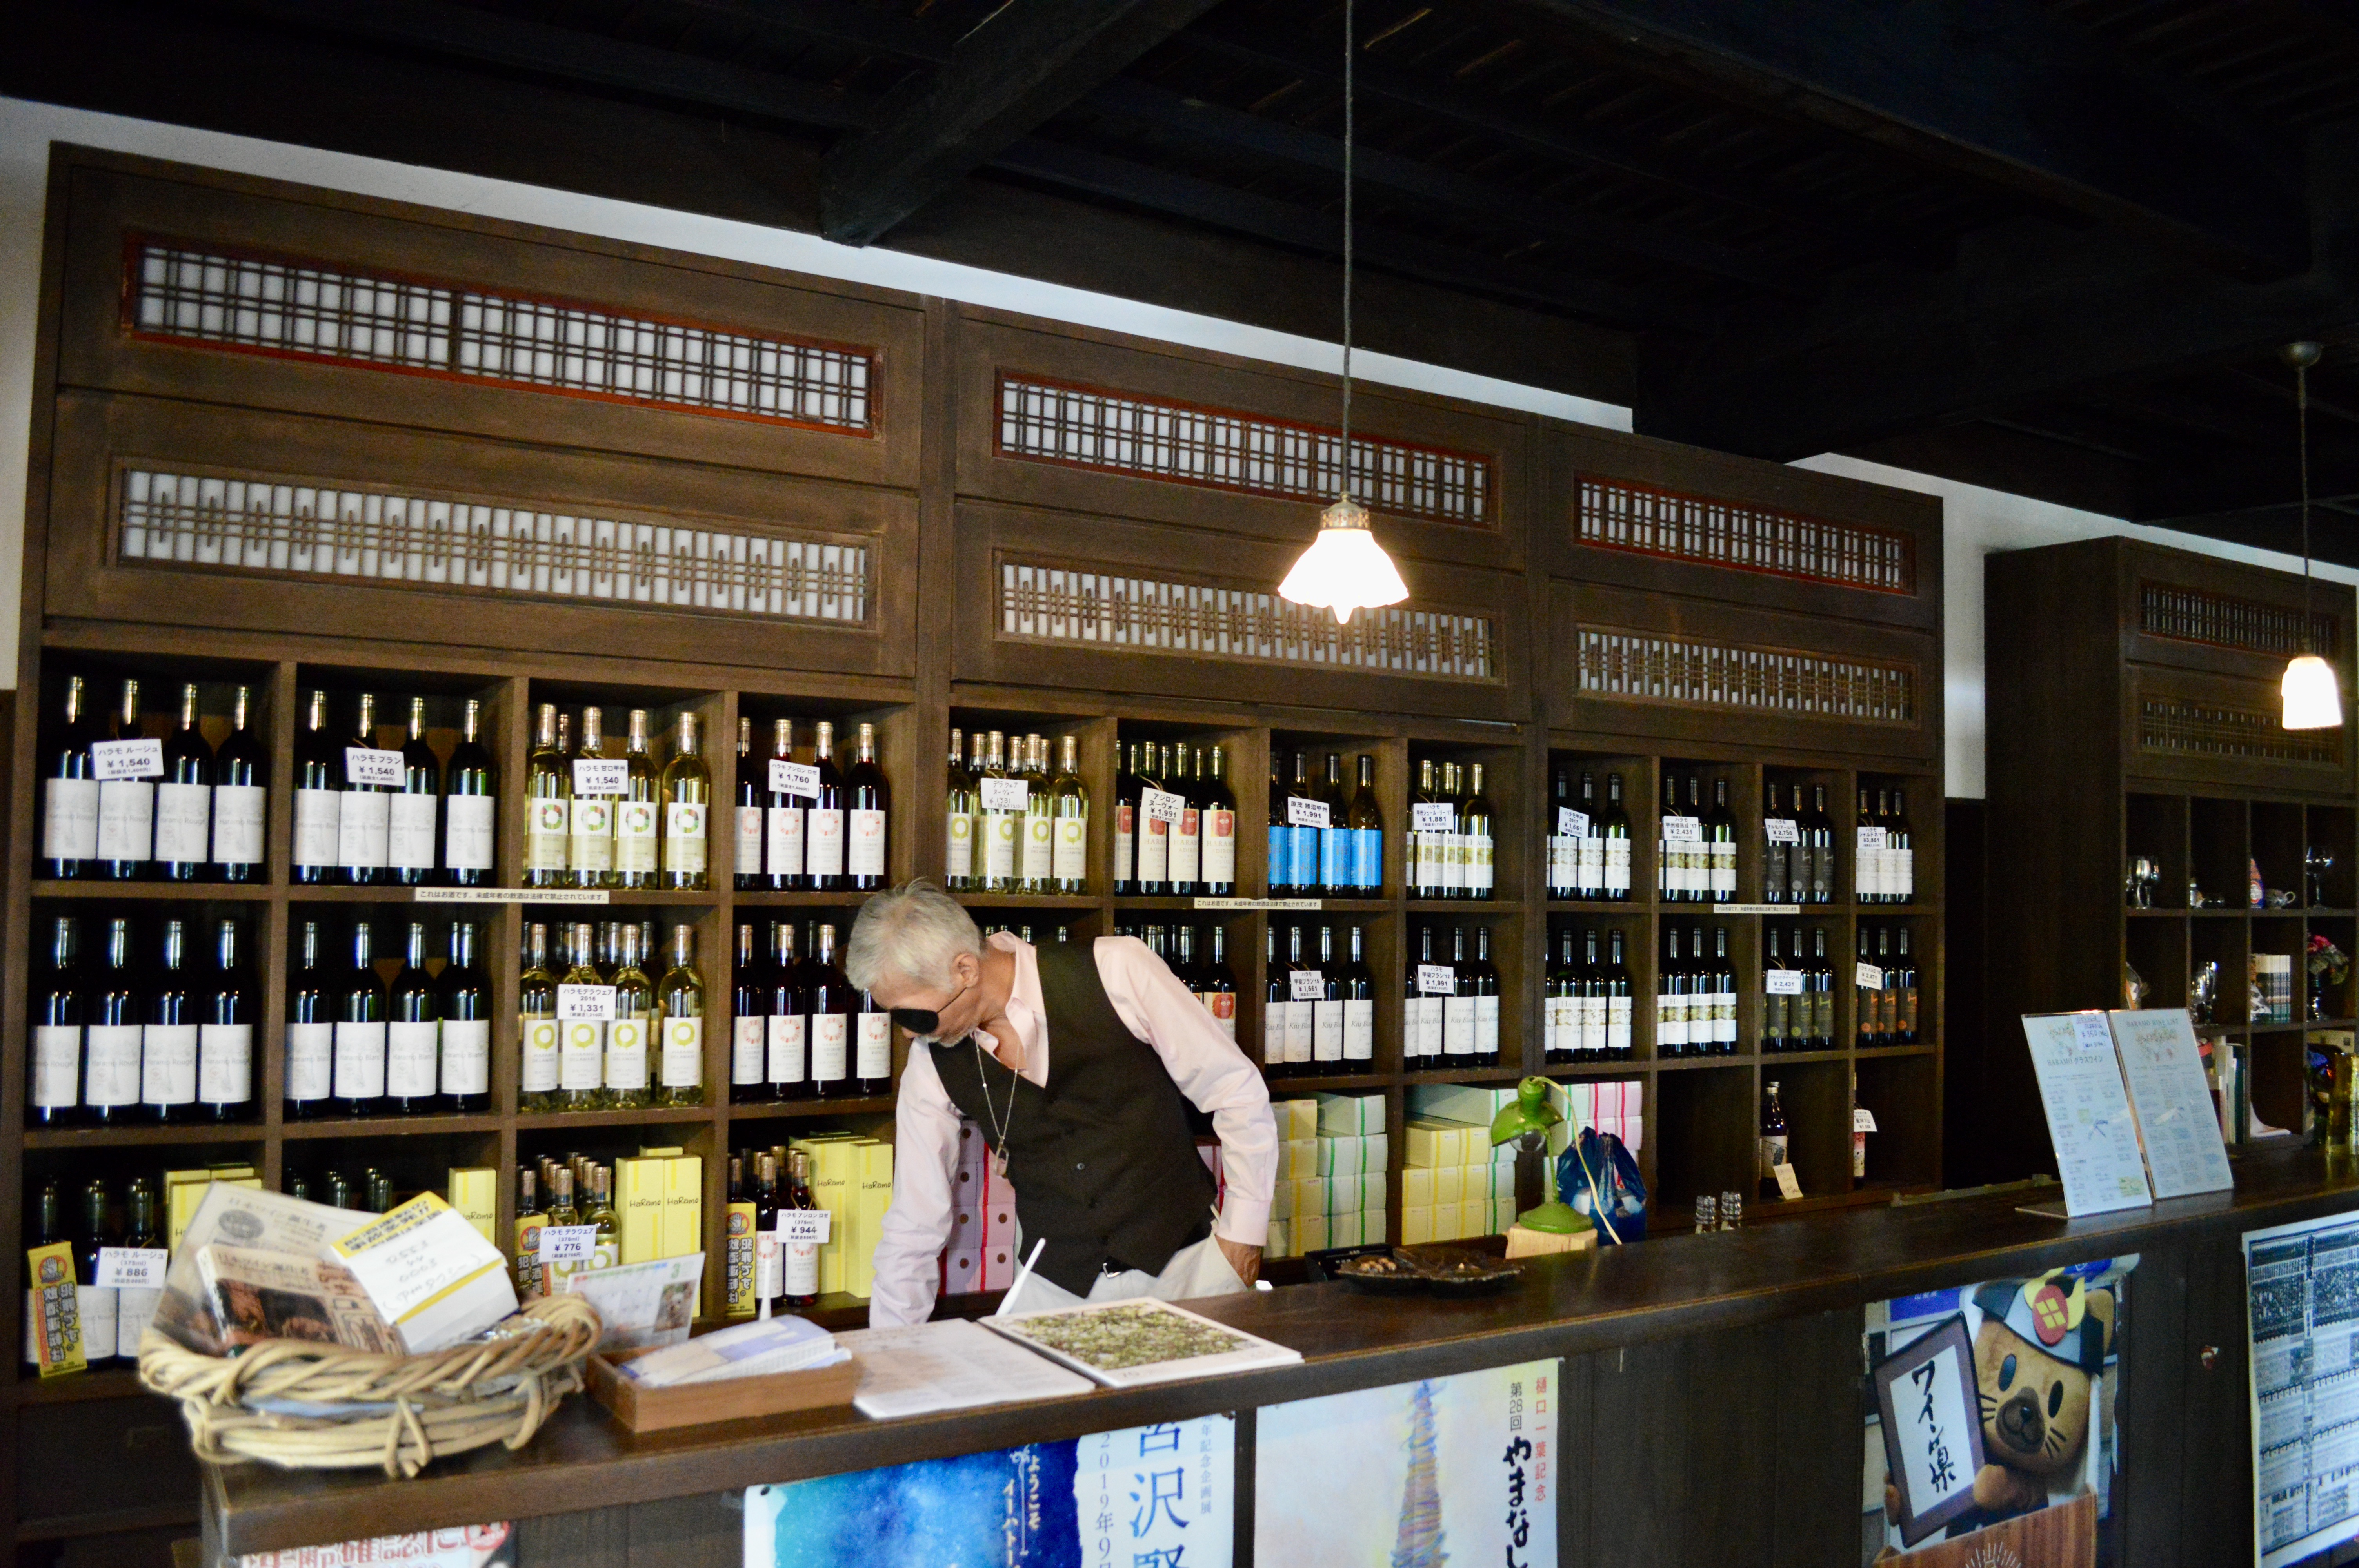 Here is the owner of Haramo Winery behind the tasting counter.